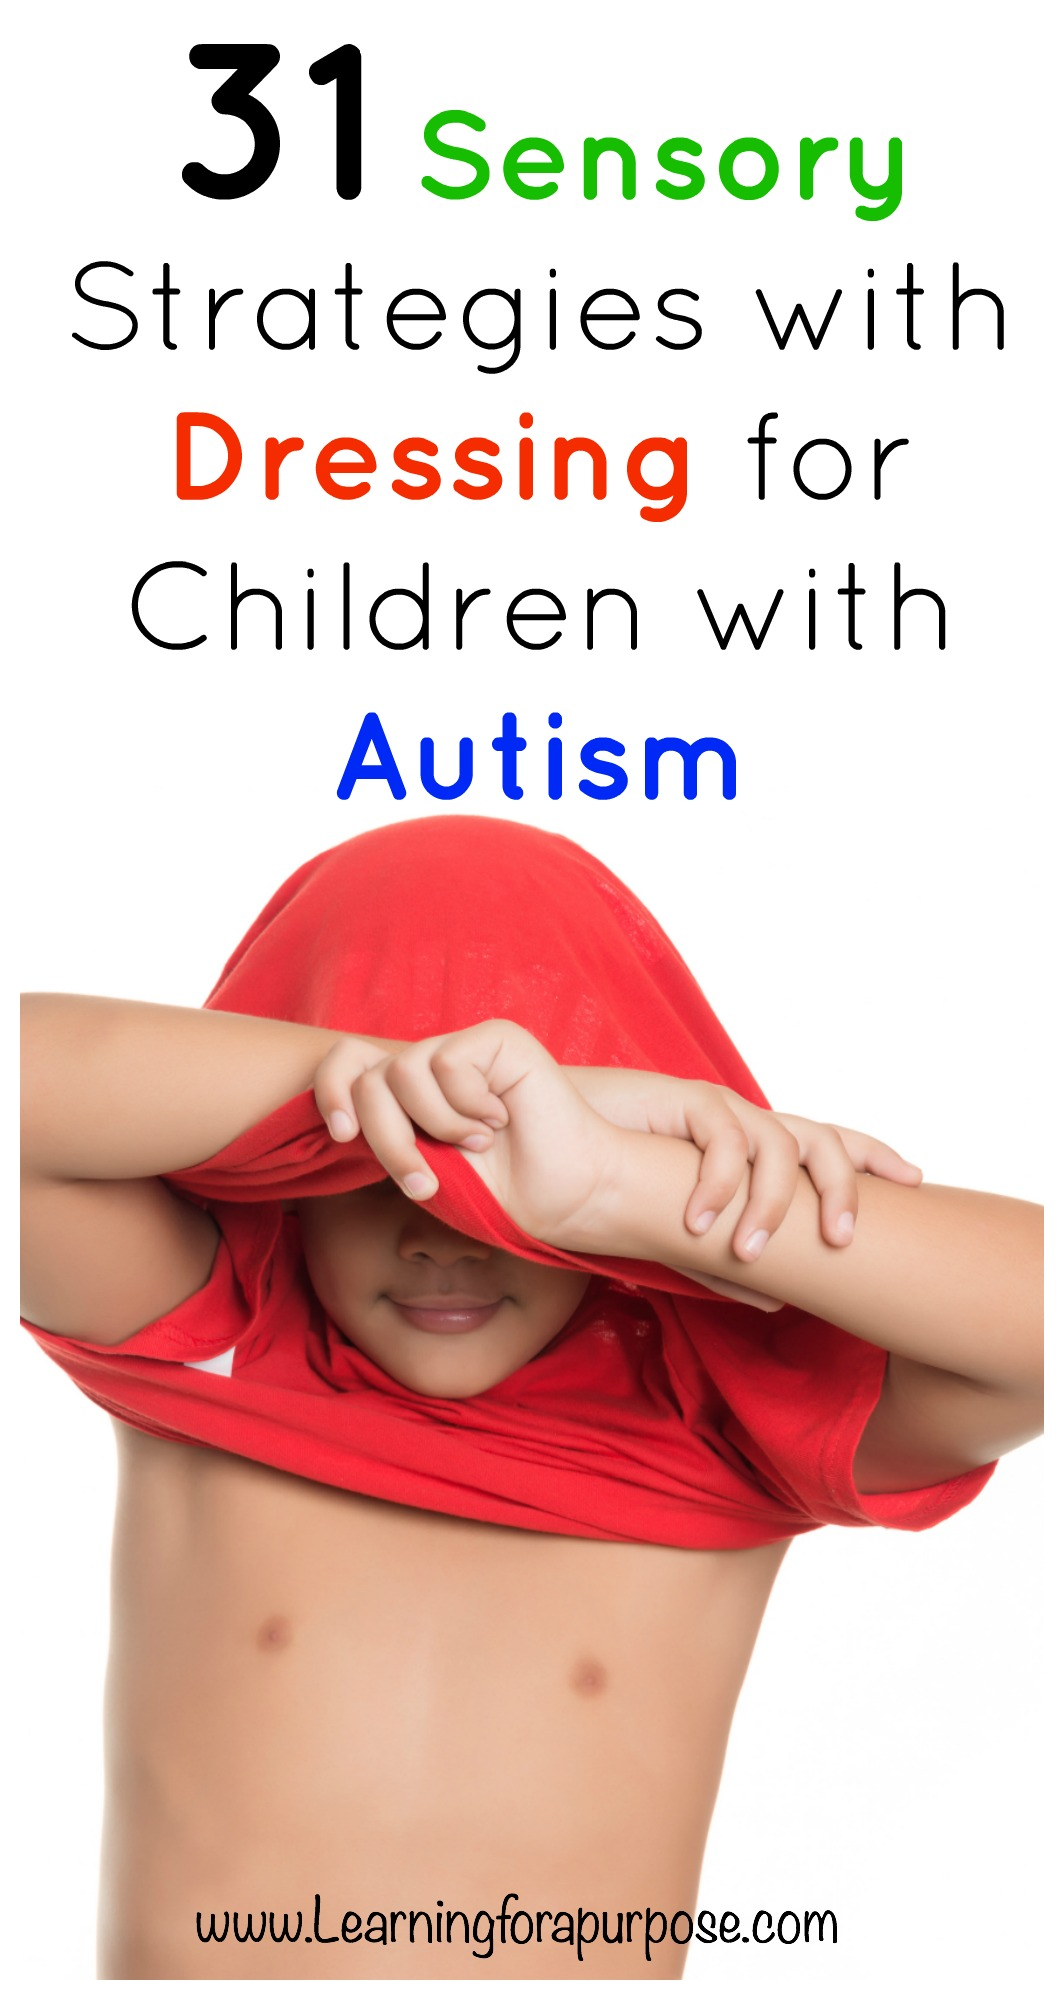 31 Sensory Strategies with Dressing for Children with Autism #autism #dressing #selfcare